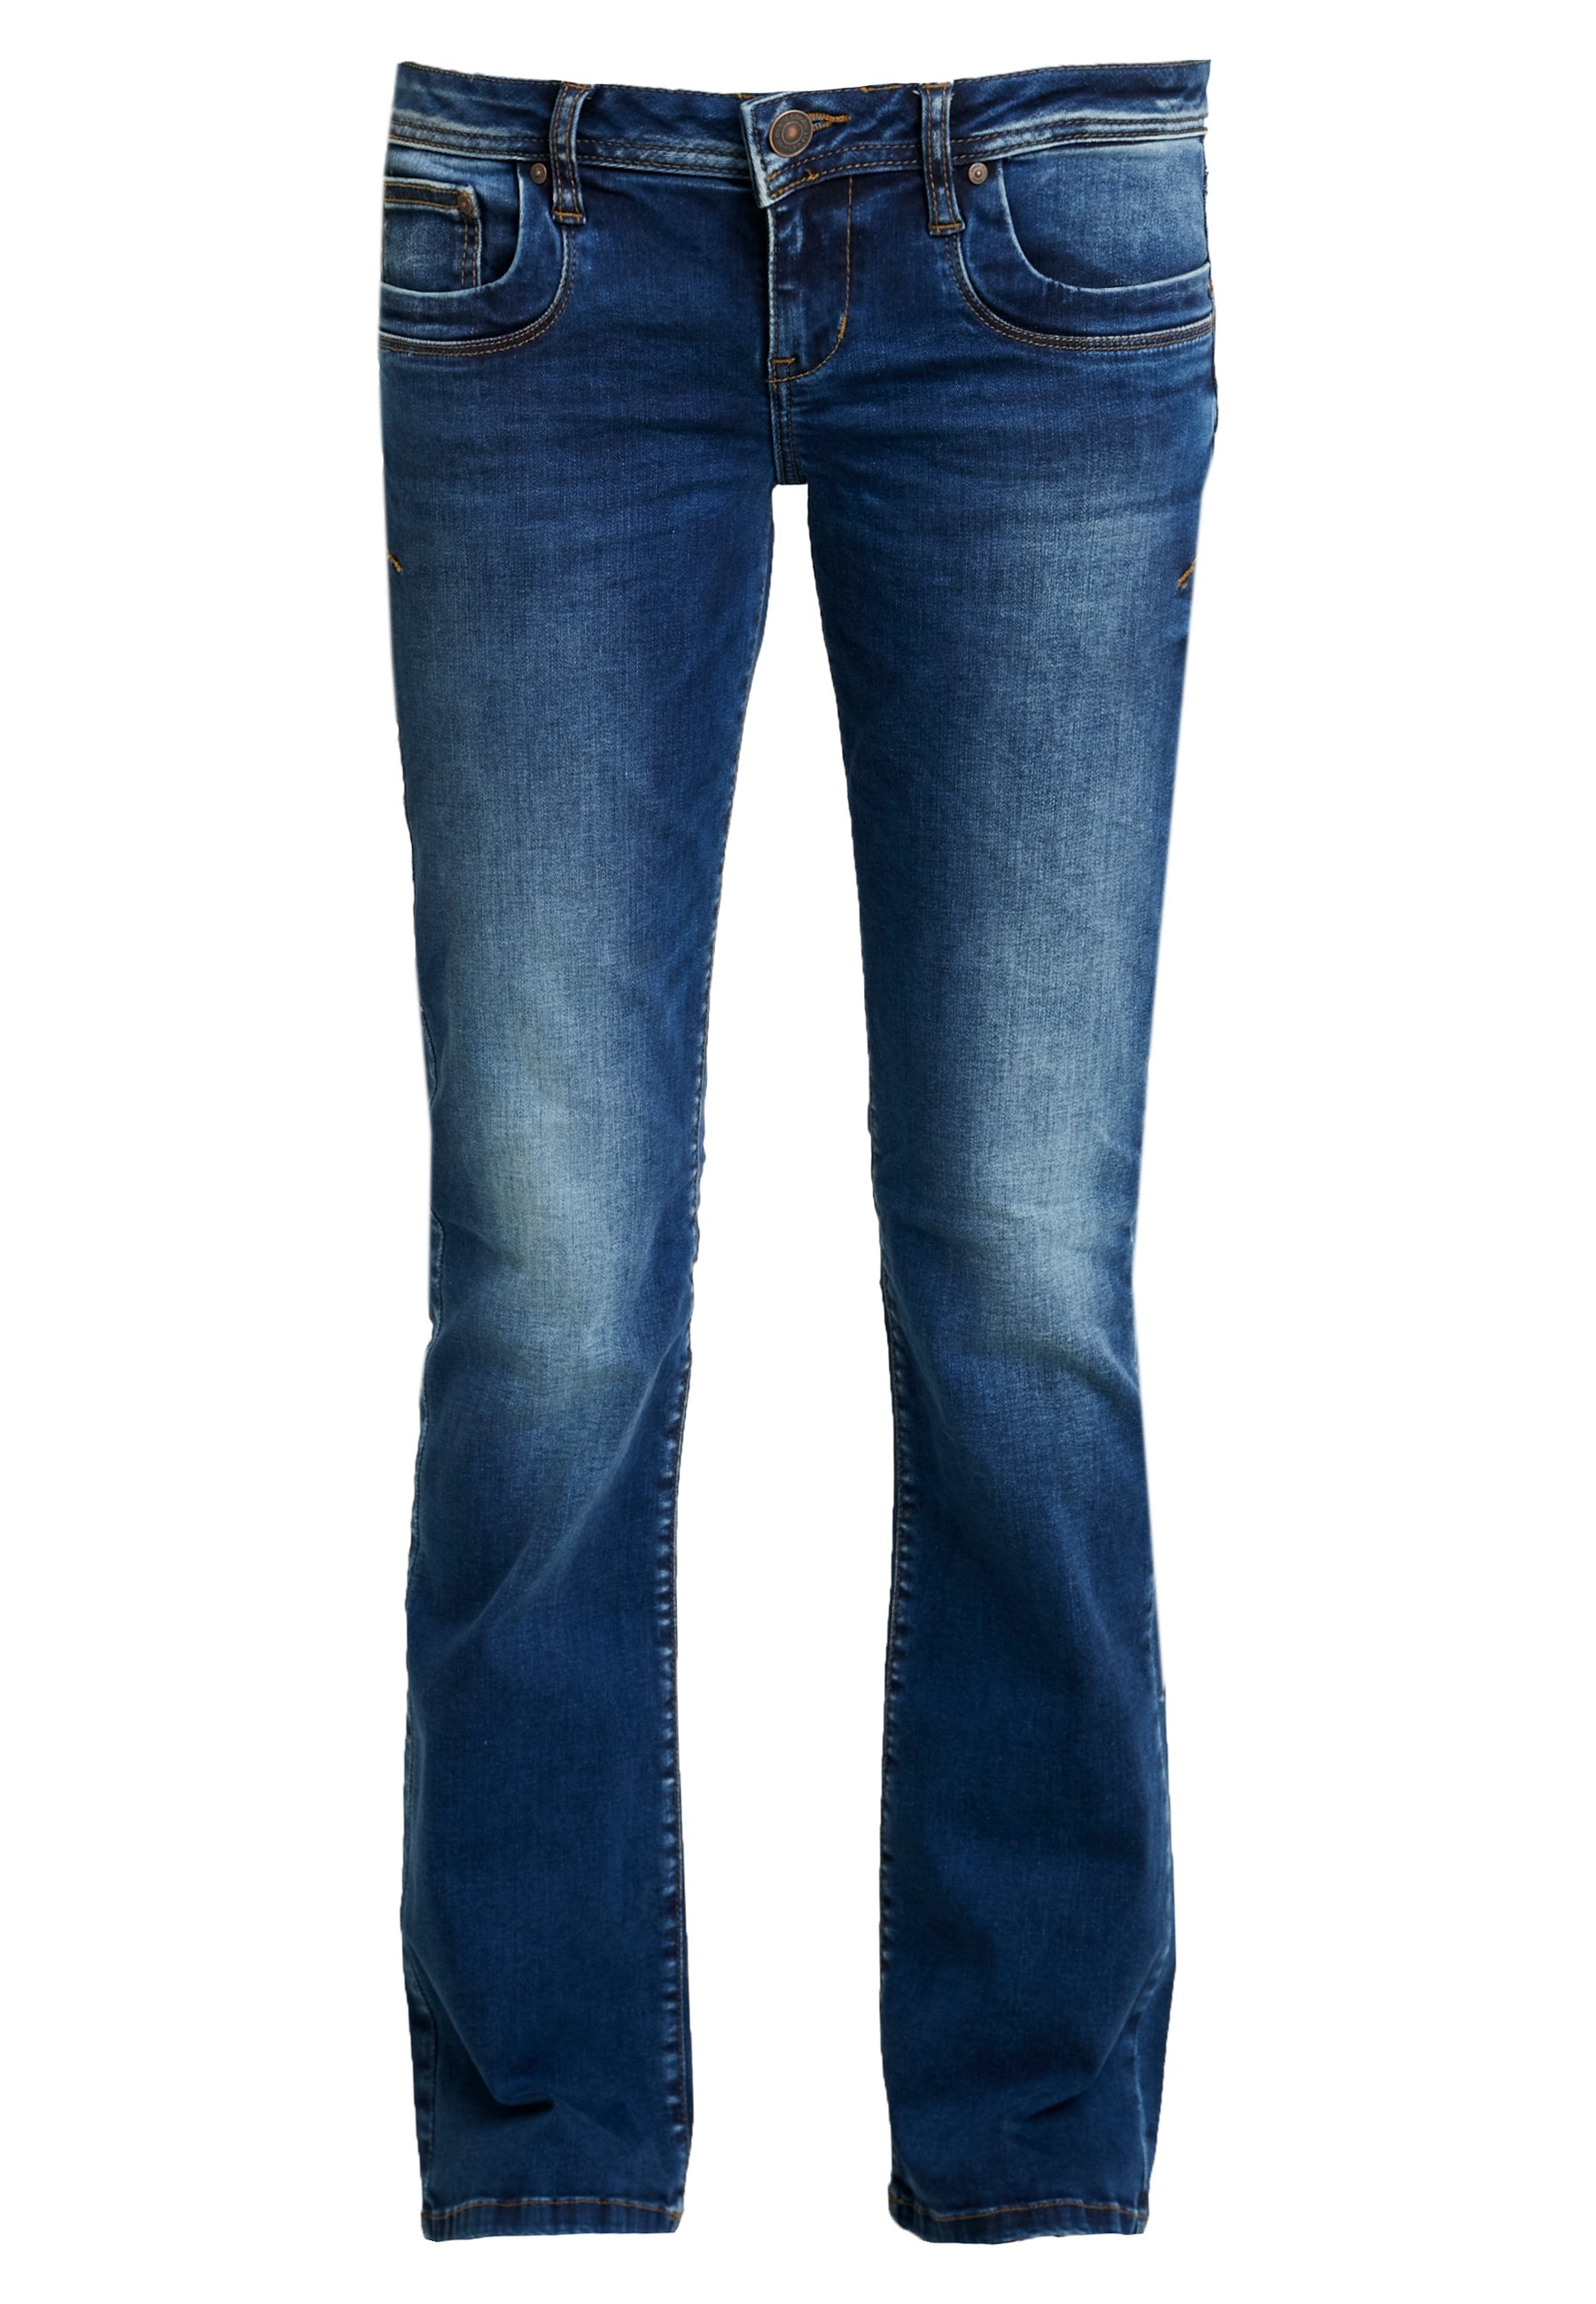 Ltb Valerie - Jeans Bootcut Ikeda Wash